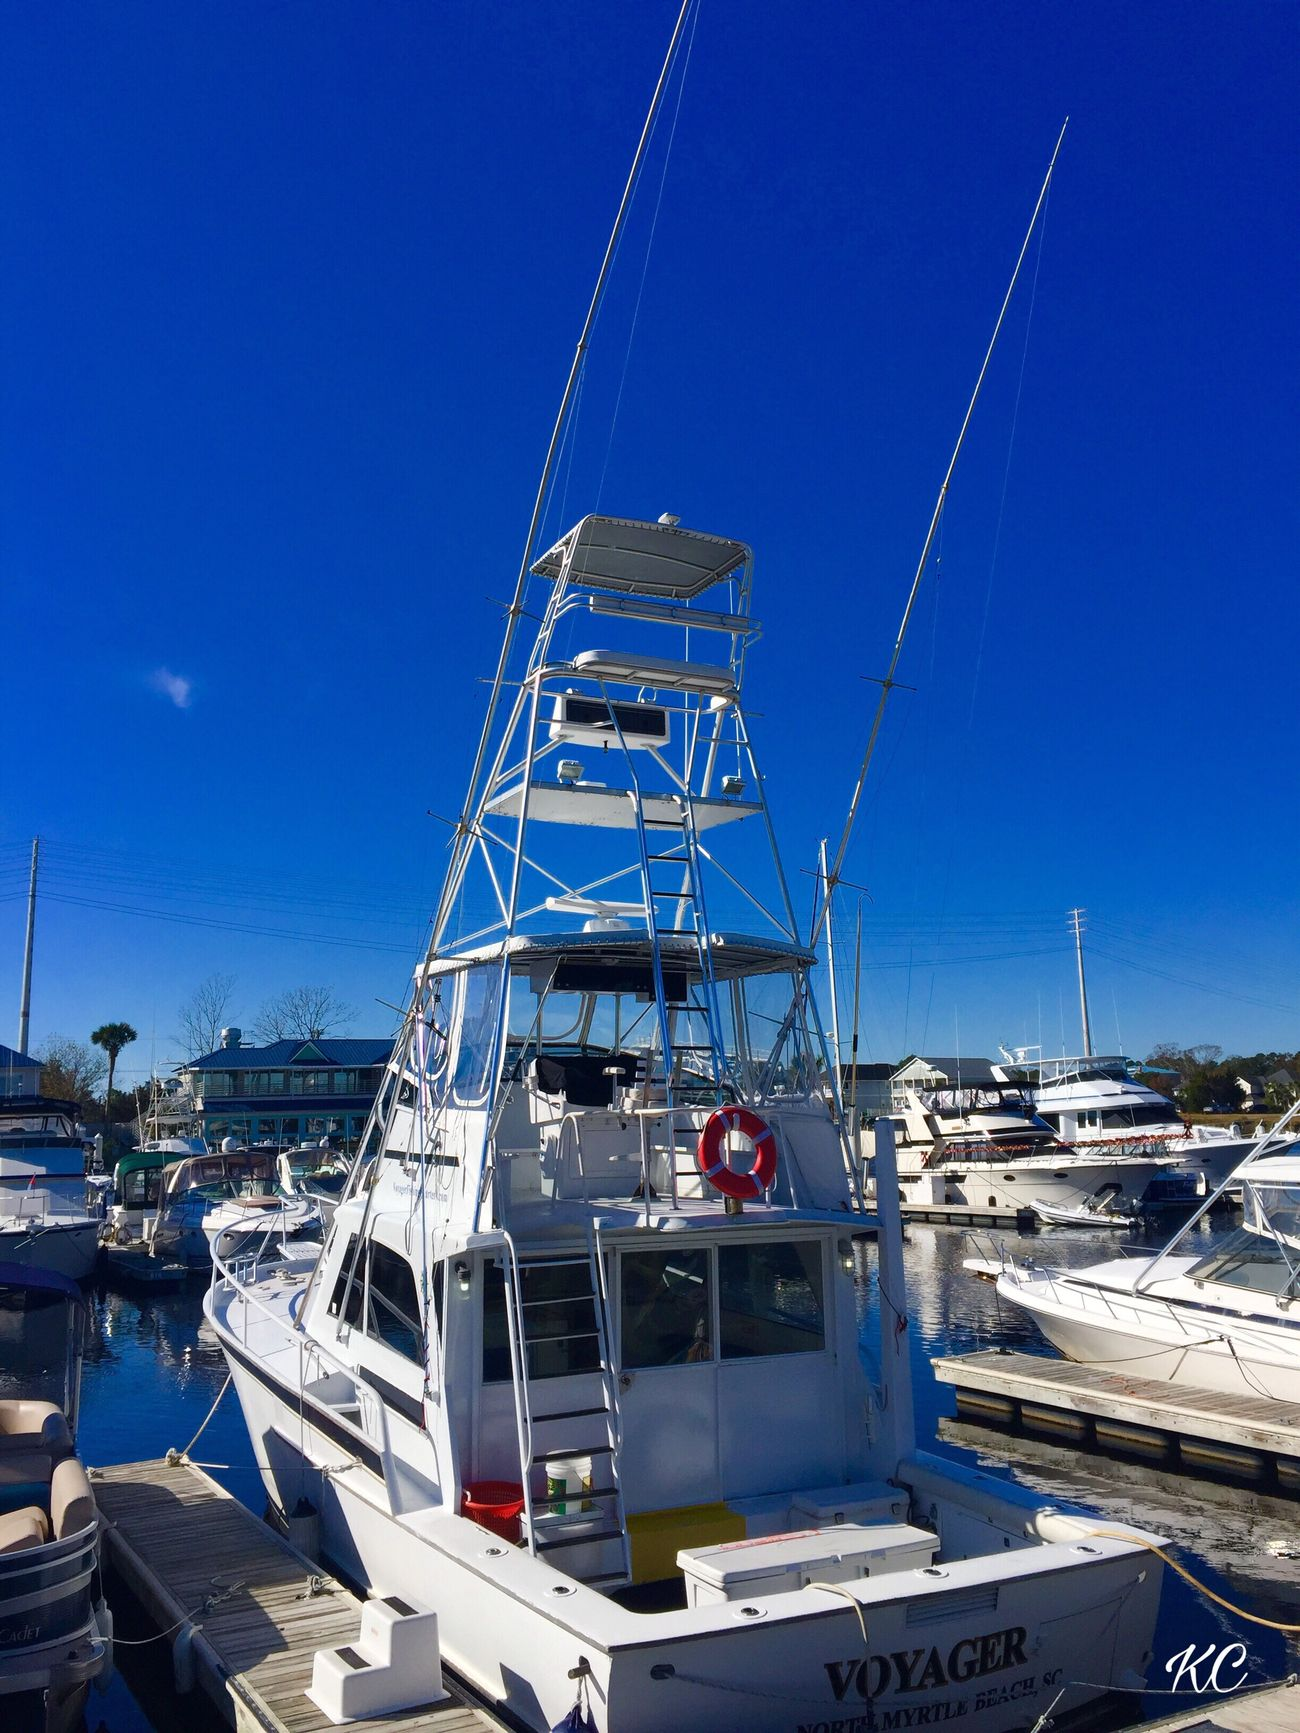 Nautical Vessel Transportation Moored Mode Of Transport Blue Sky Outdoors Clear Sky No People Day Built Structure Mast Nature Harbor Water Architecture